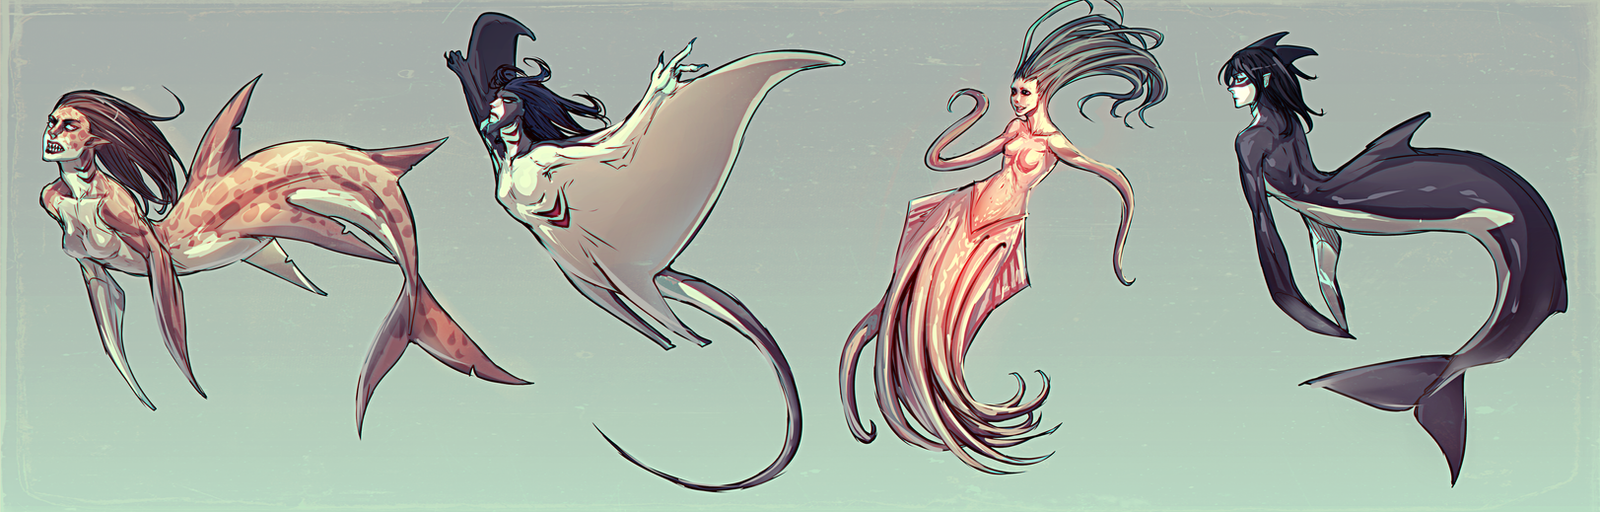 Merpeople by moni158